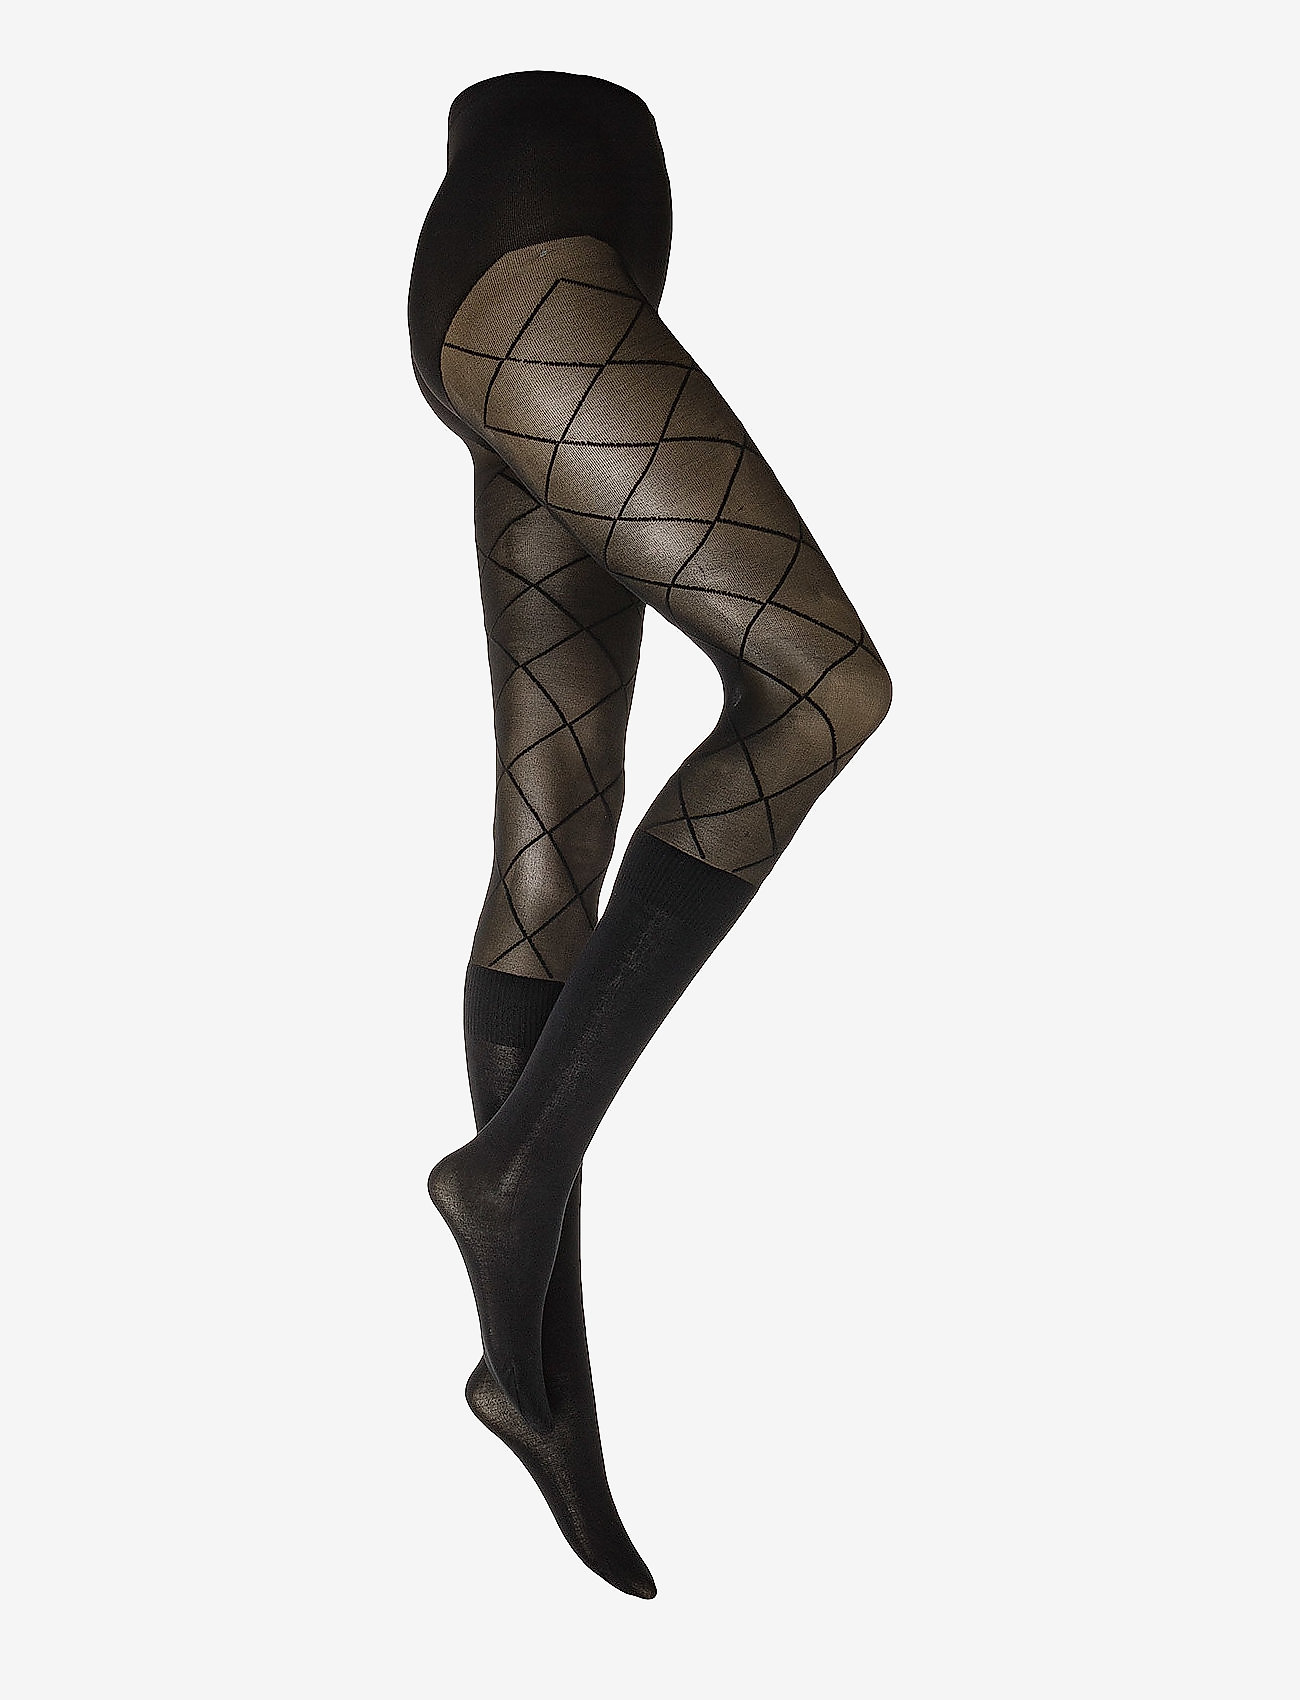 Pretty Polly - PP PATTERN MODAL SOCK TIGHTS - patroon - black - 0